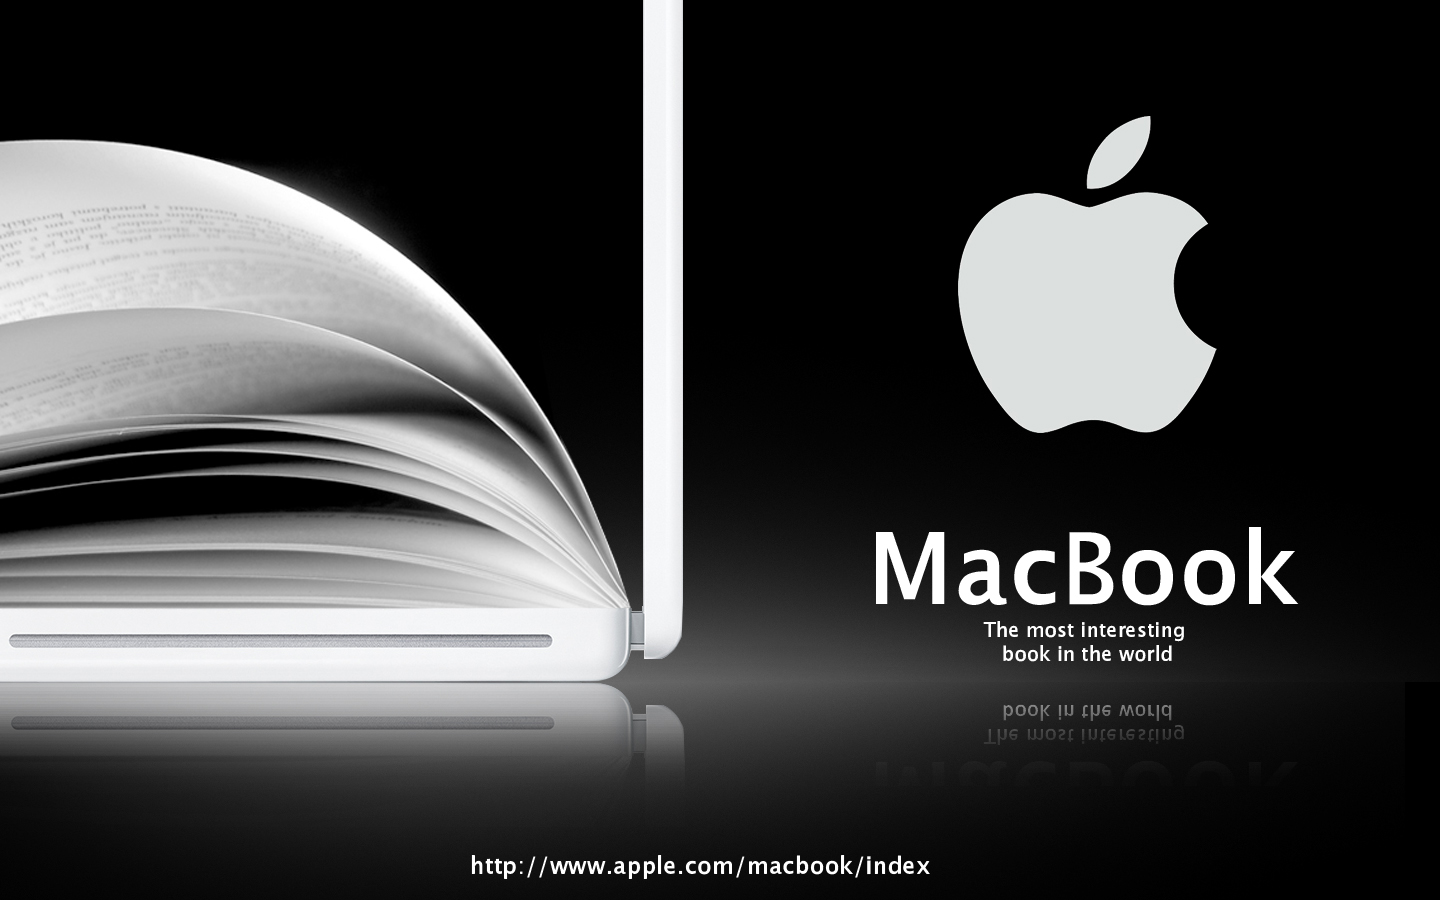 Advert for Apple Macbook by i-visual